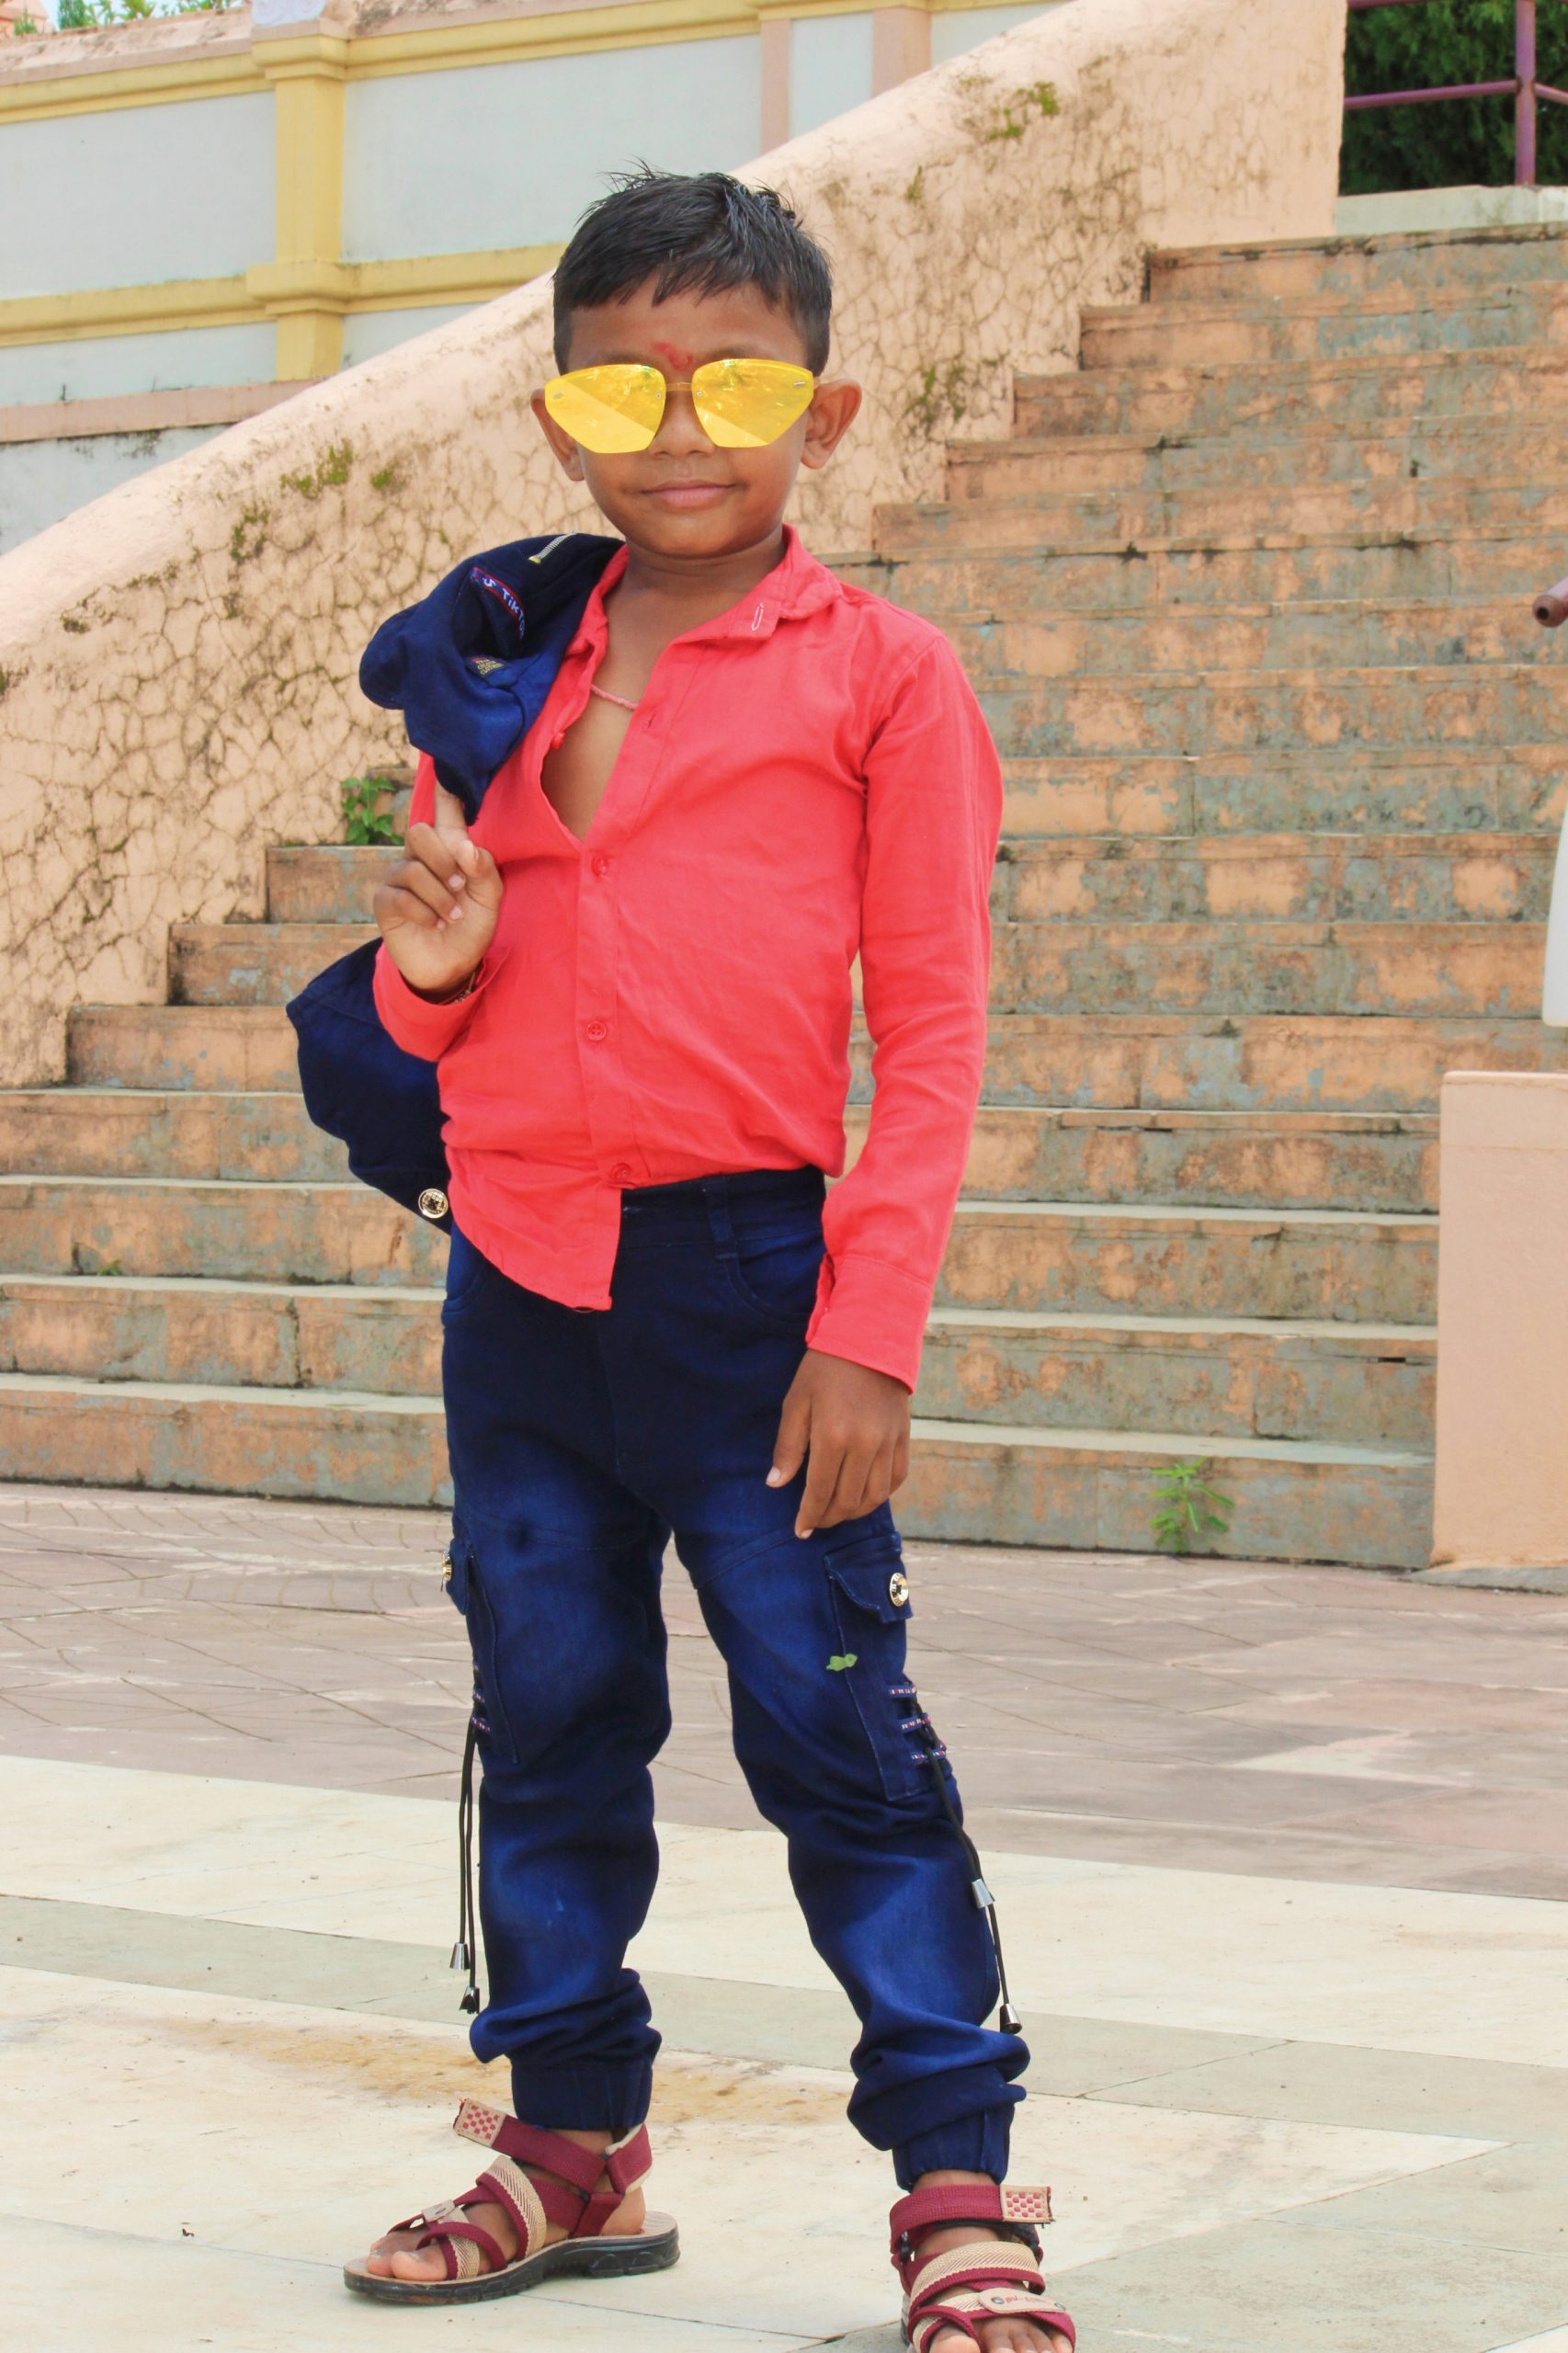 Little boy posing while wearing sunglasses